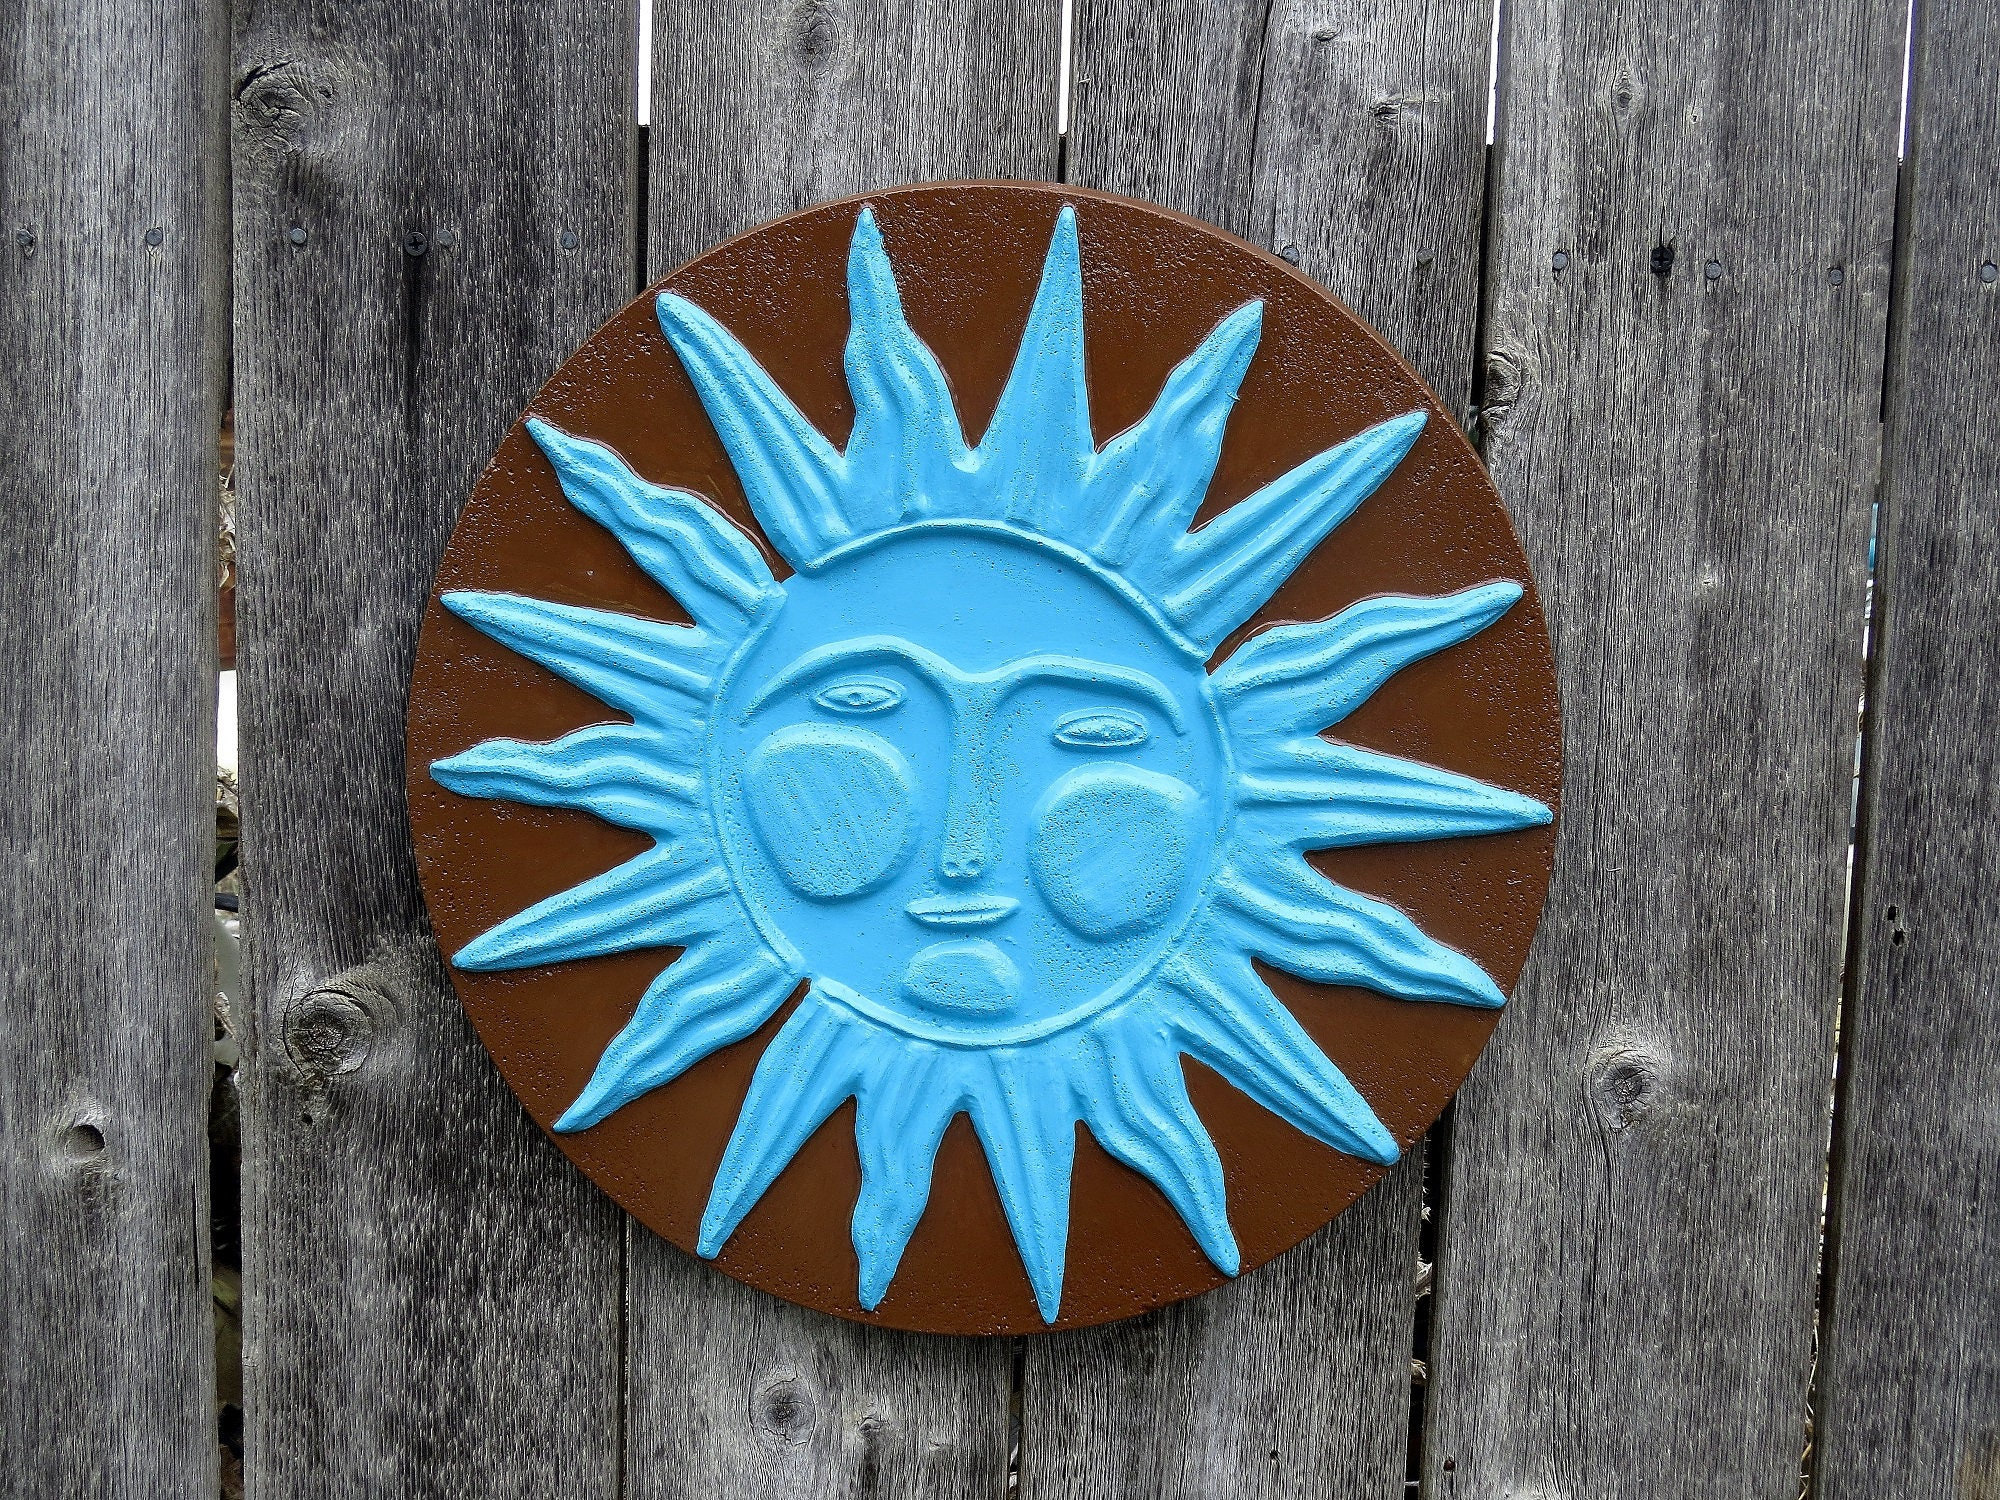 Exceptional Sunface, Concrete Wall Hanging, Plaque, Yard Art, Patio Decor, Brown And  Blue, Fence Art, Sun Face, Garden Decor